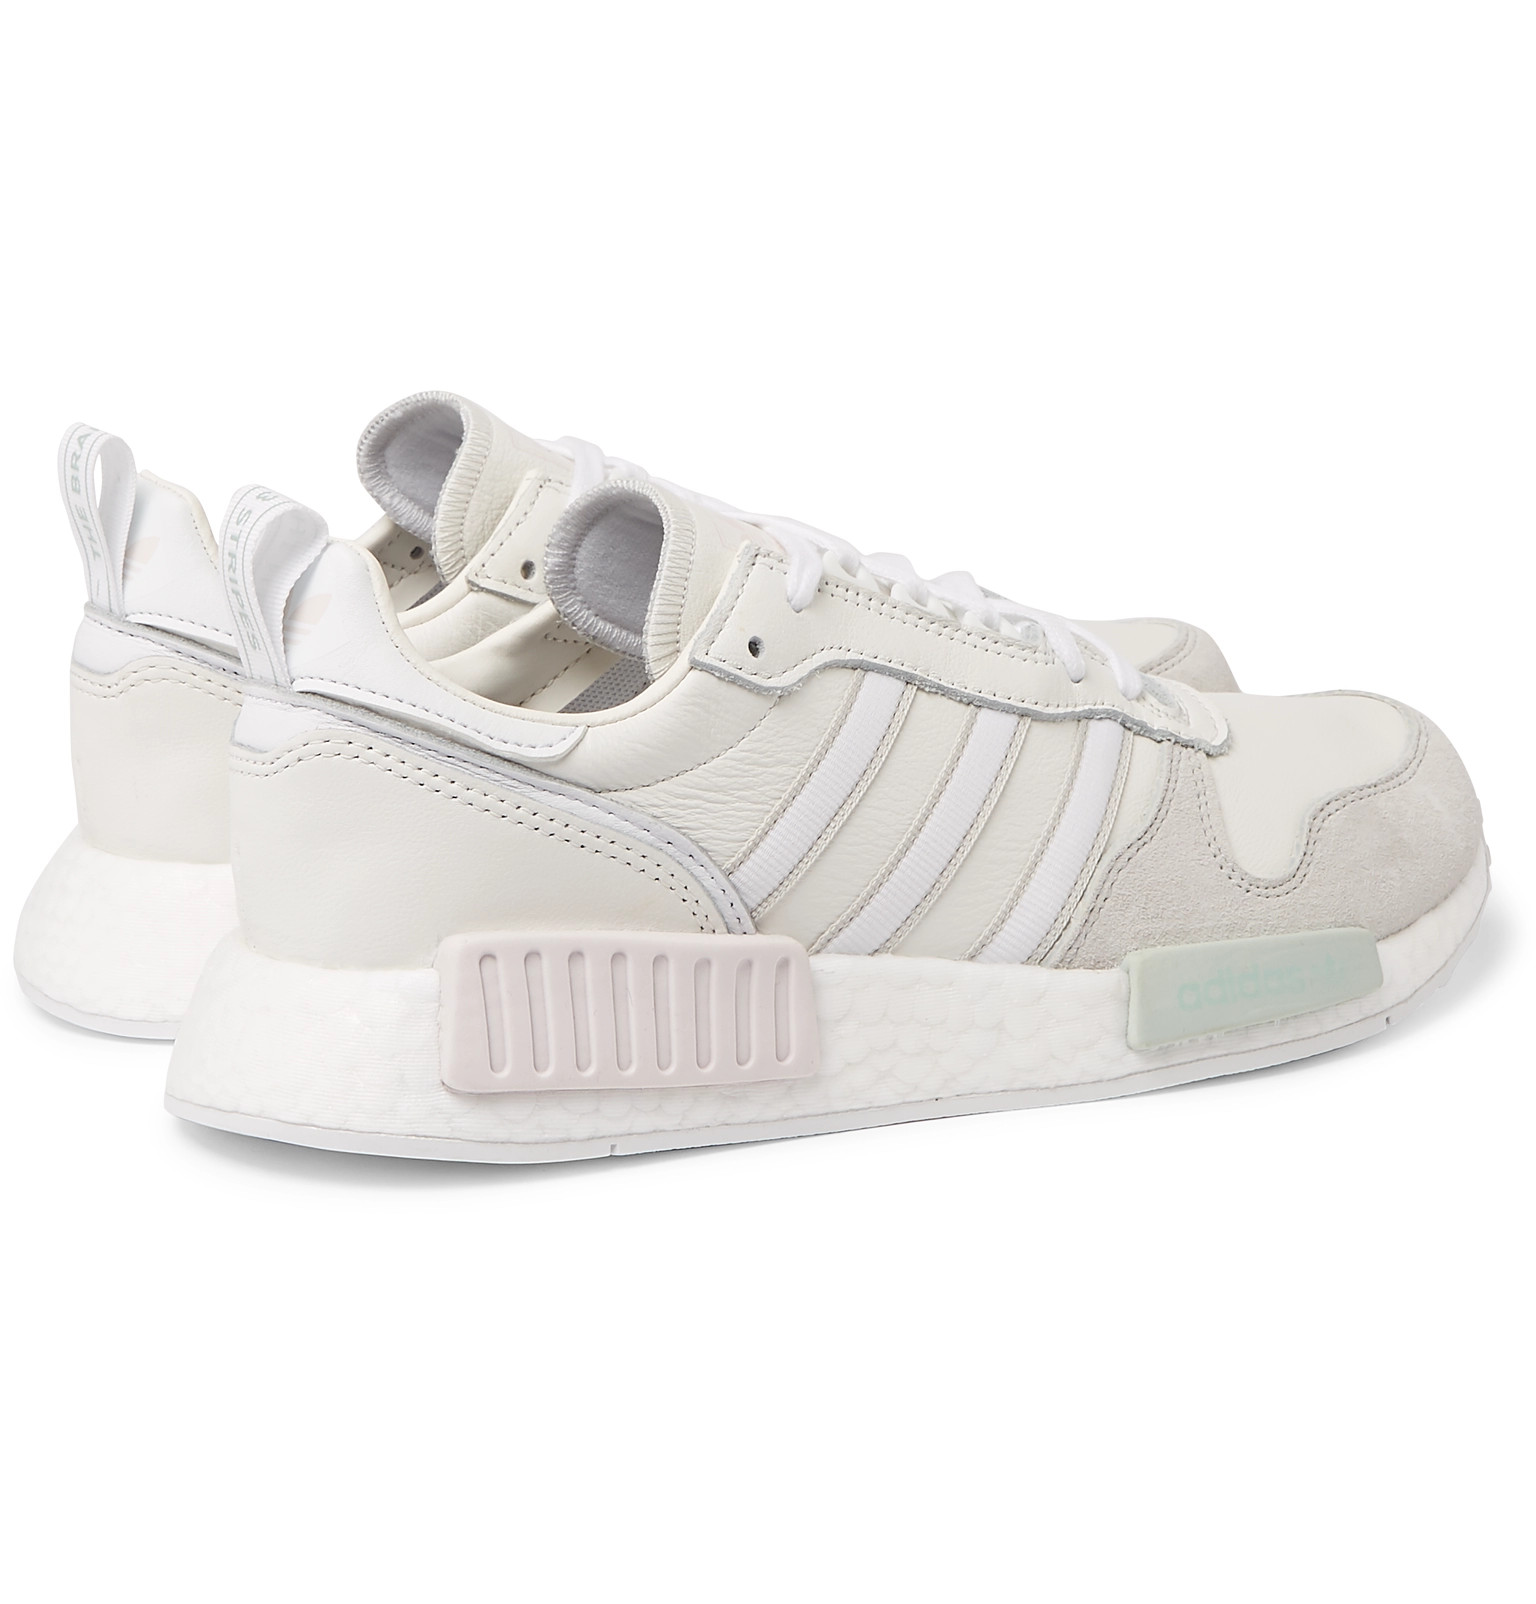 92eb004a4095f9 adidas Originals - Rising Star X R1 Leather and Suede Sneakers